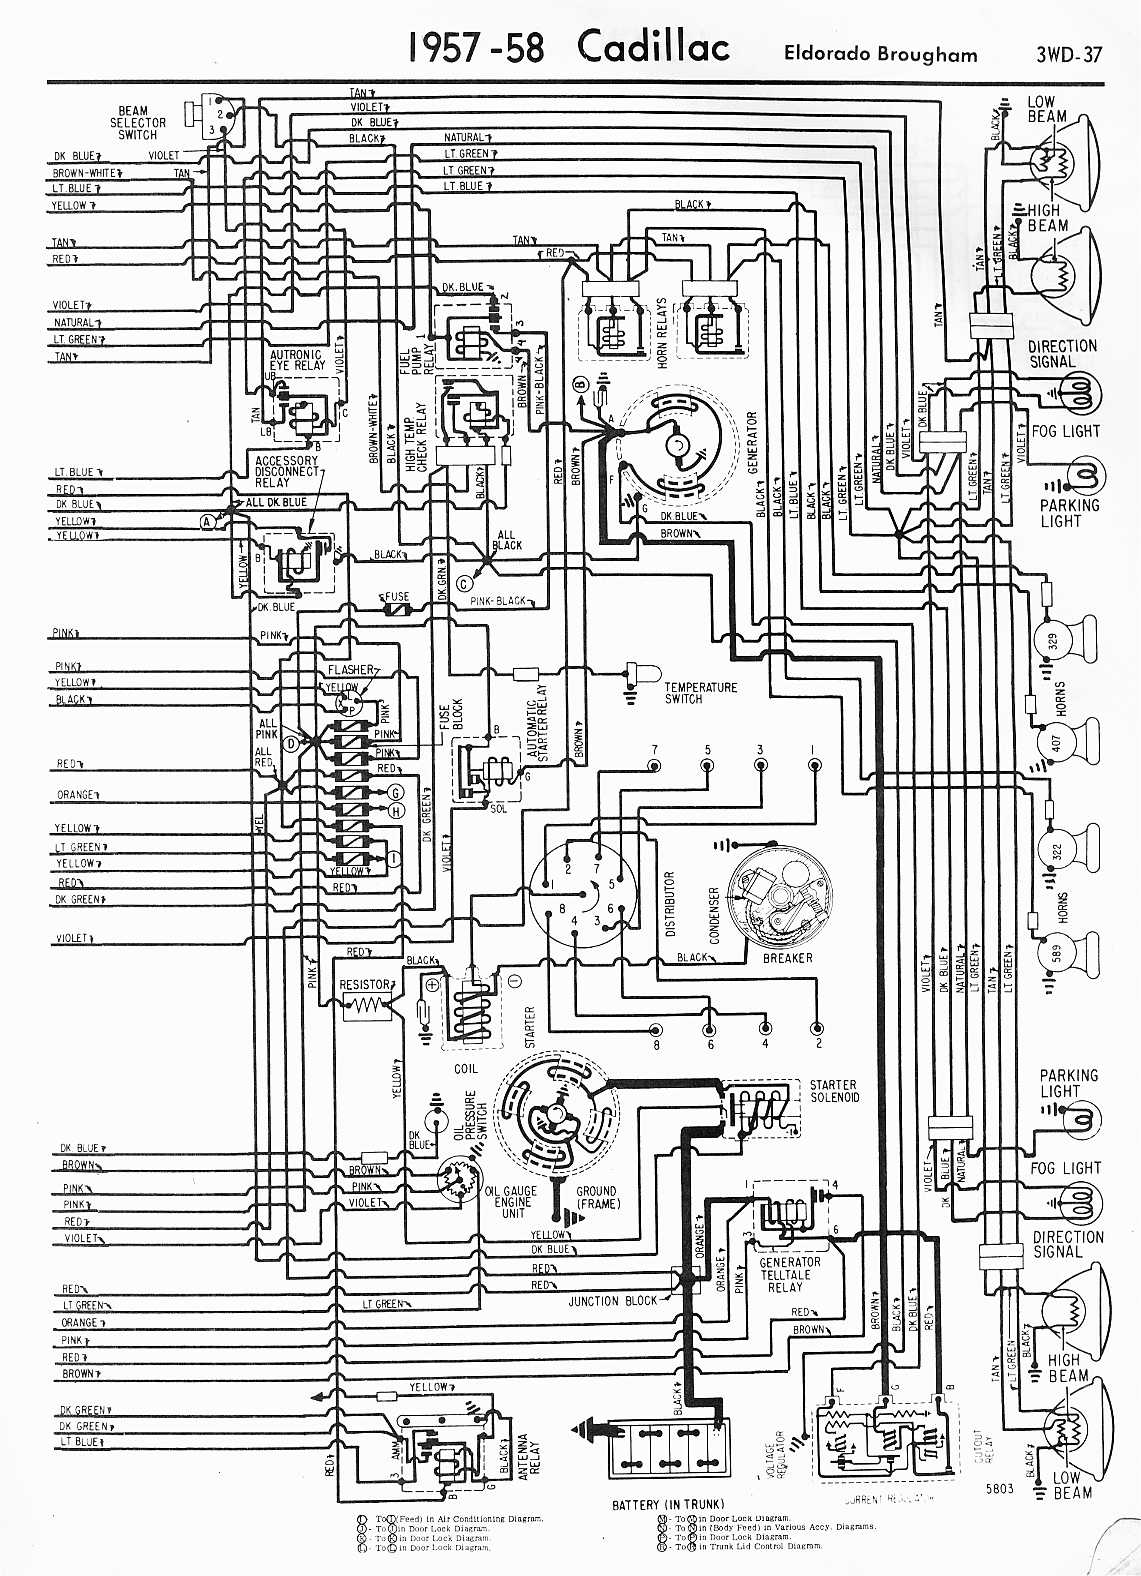 MWireCadi65_3WD 037 cadillac wiring diagrams 1957 1965 1965 Mustang Wiring Diagram at eliteediting.co